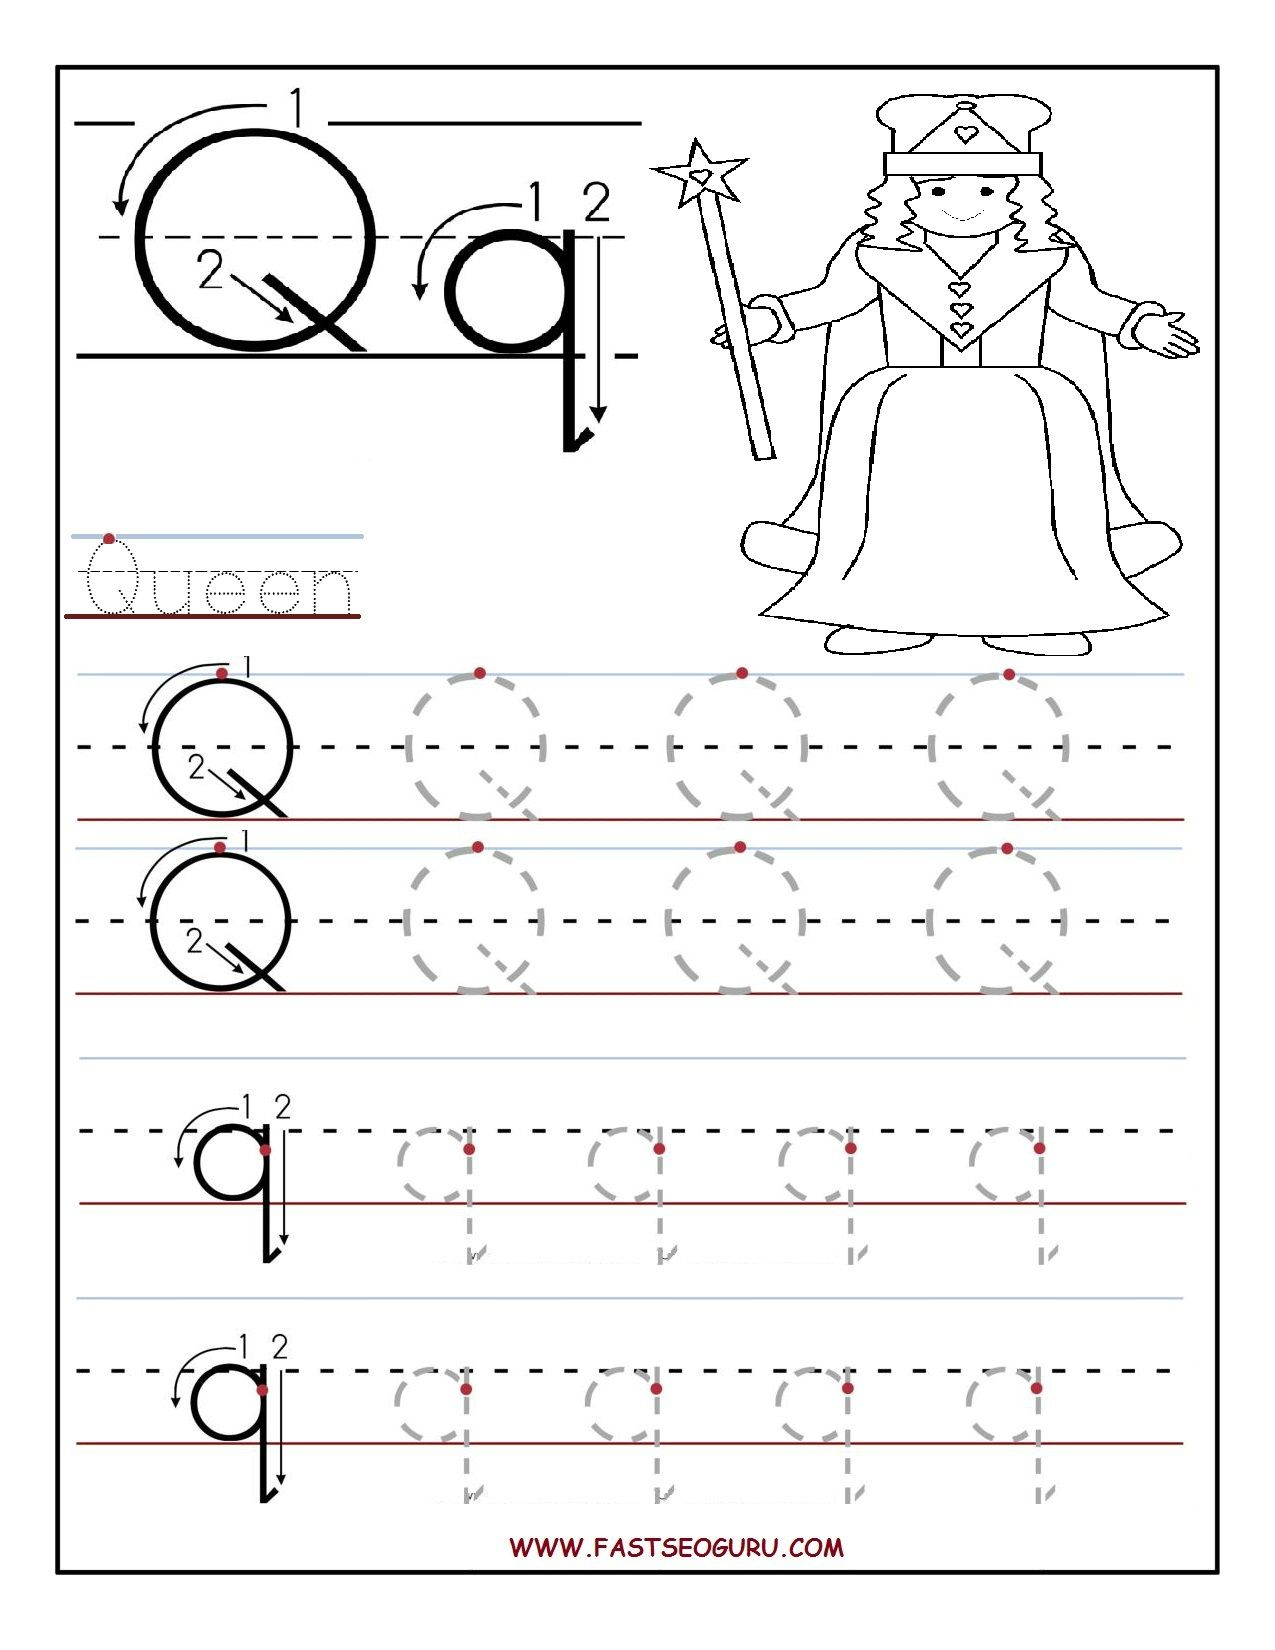 printable letter q tracing worksheets for preschool word. Black Bedroom Furniture Sets. Home Design Ideas